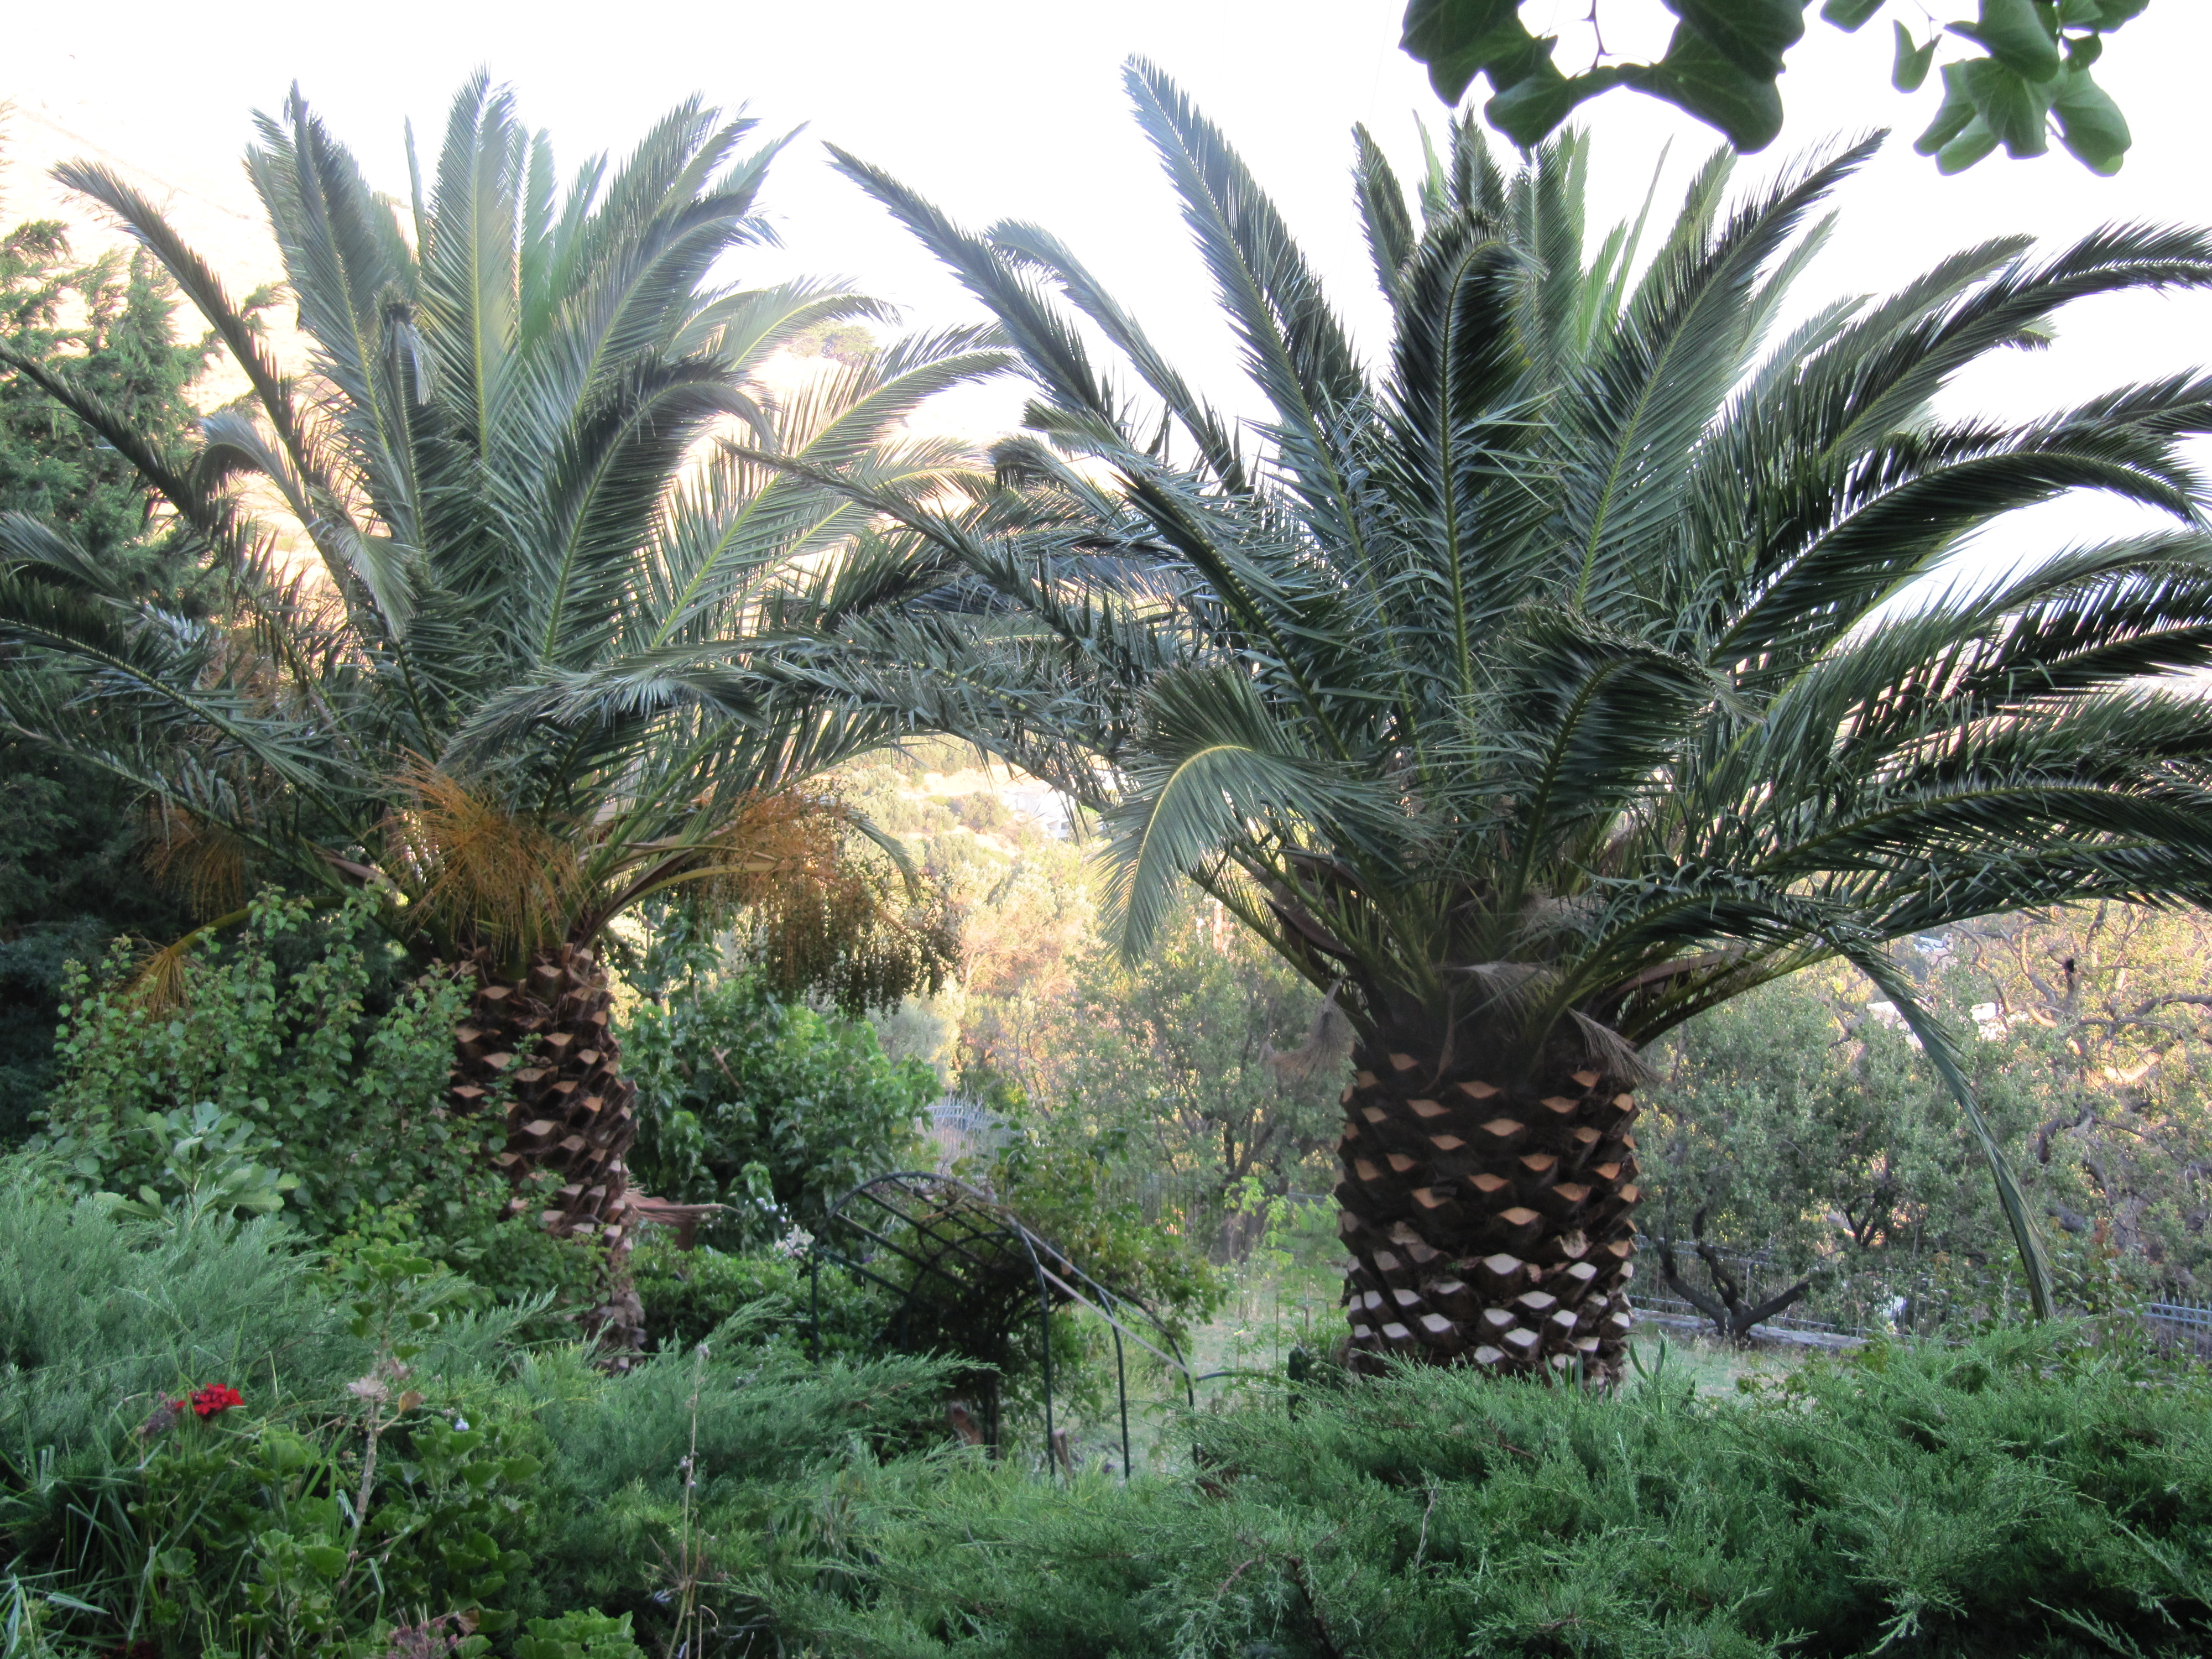 Date palms before the scourge of the Nile beetle